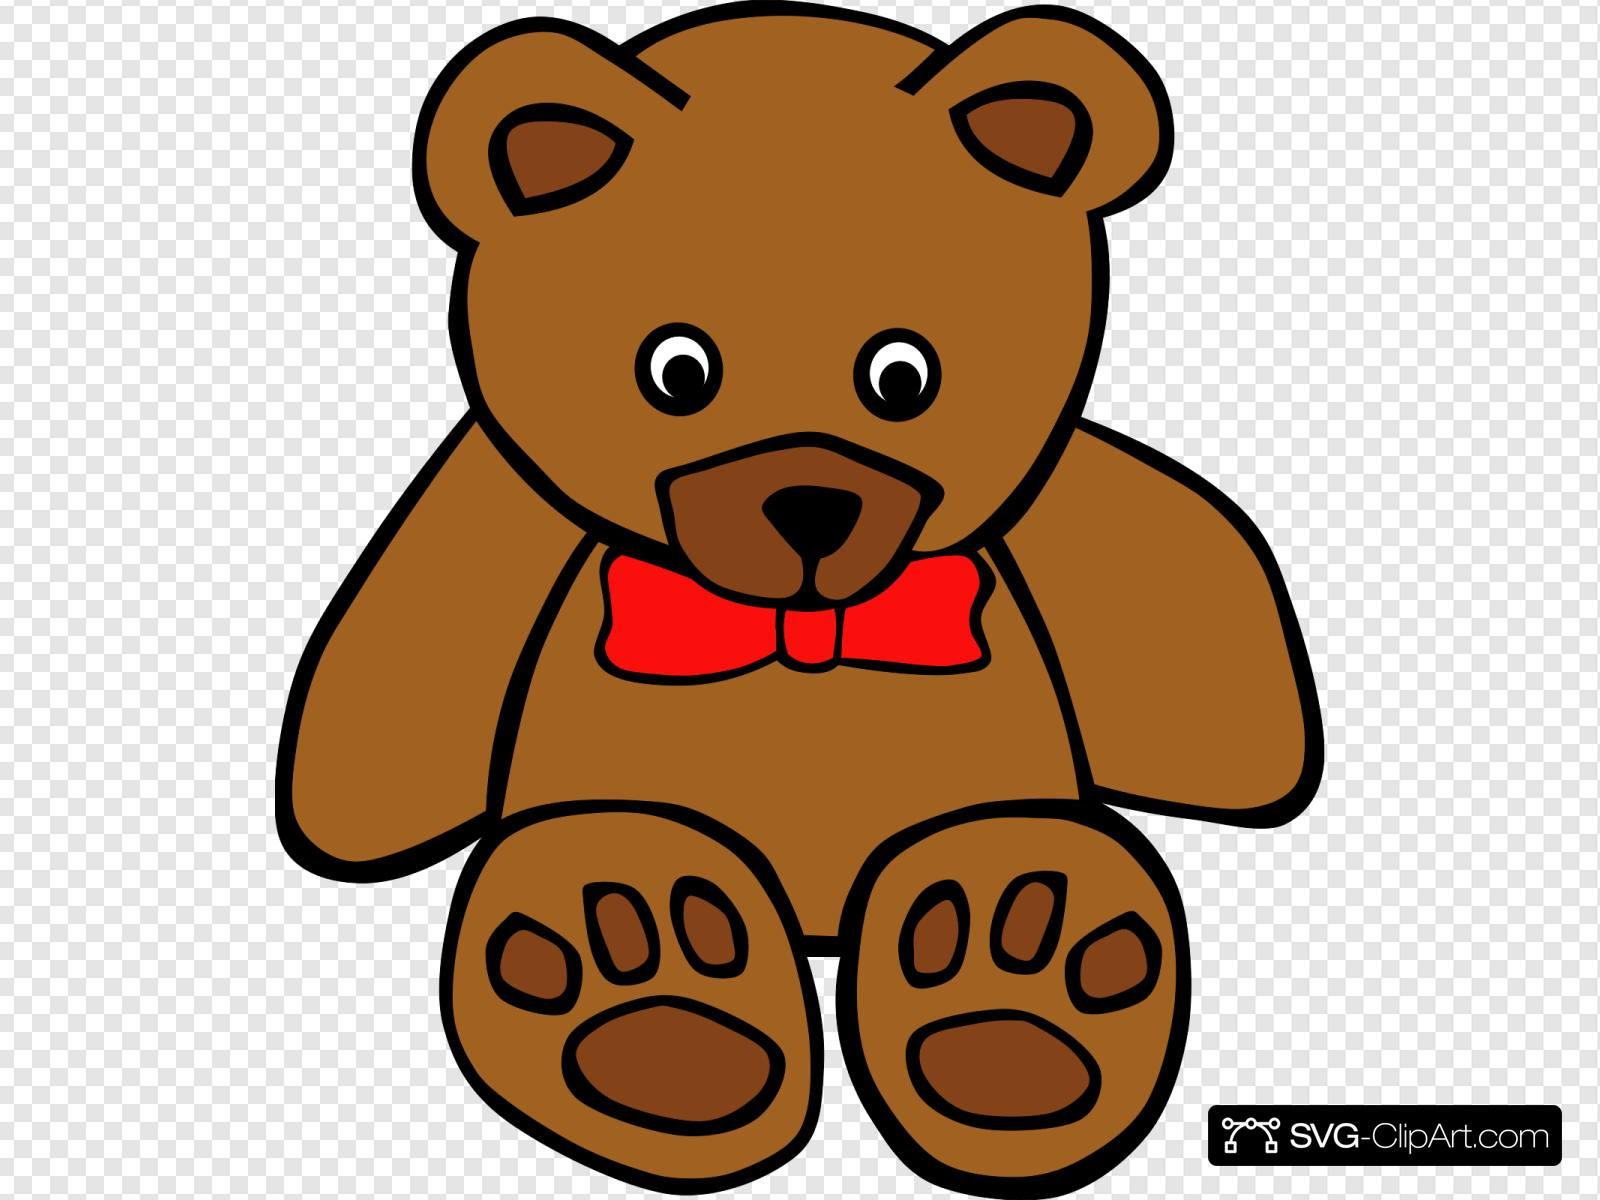 Simple Teddy Bear Svg Vector Simple Teddy Bear Clip Art Svg Clipart